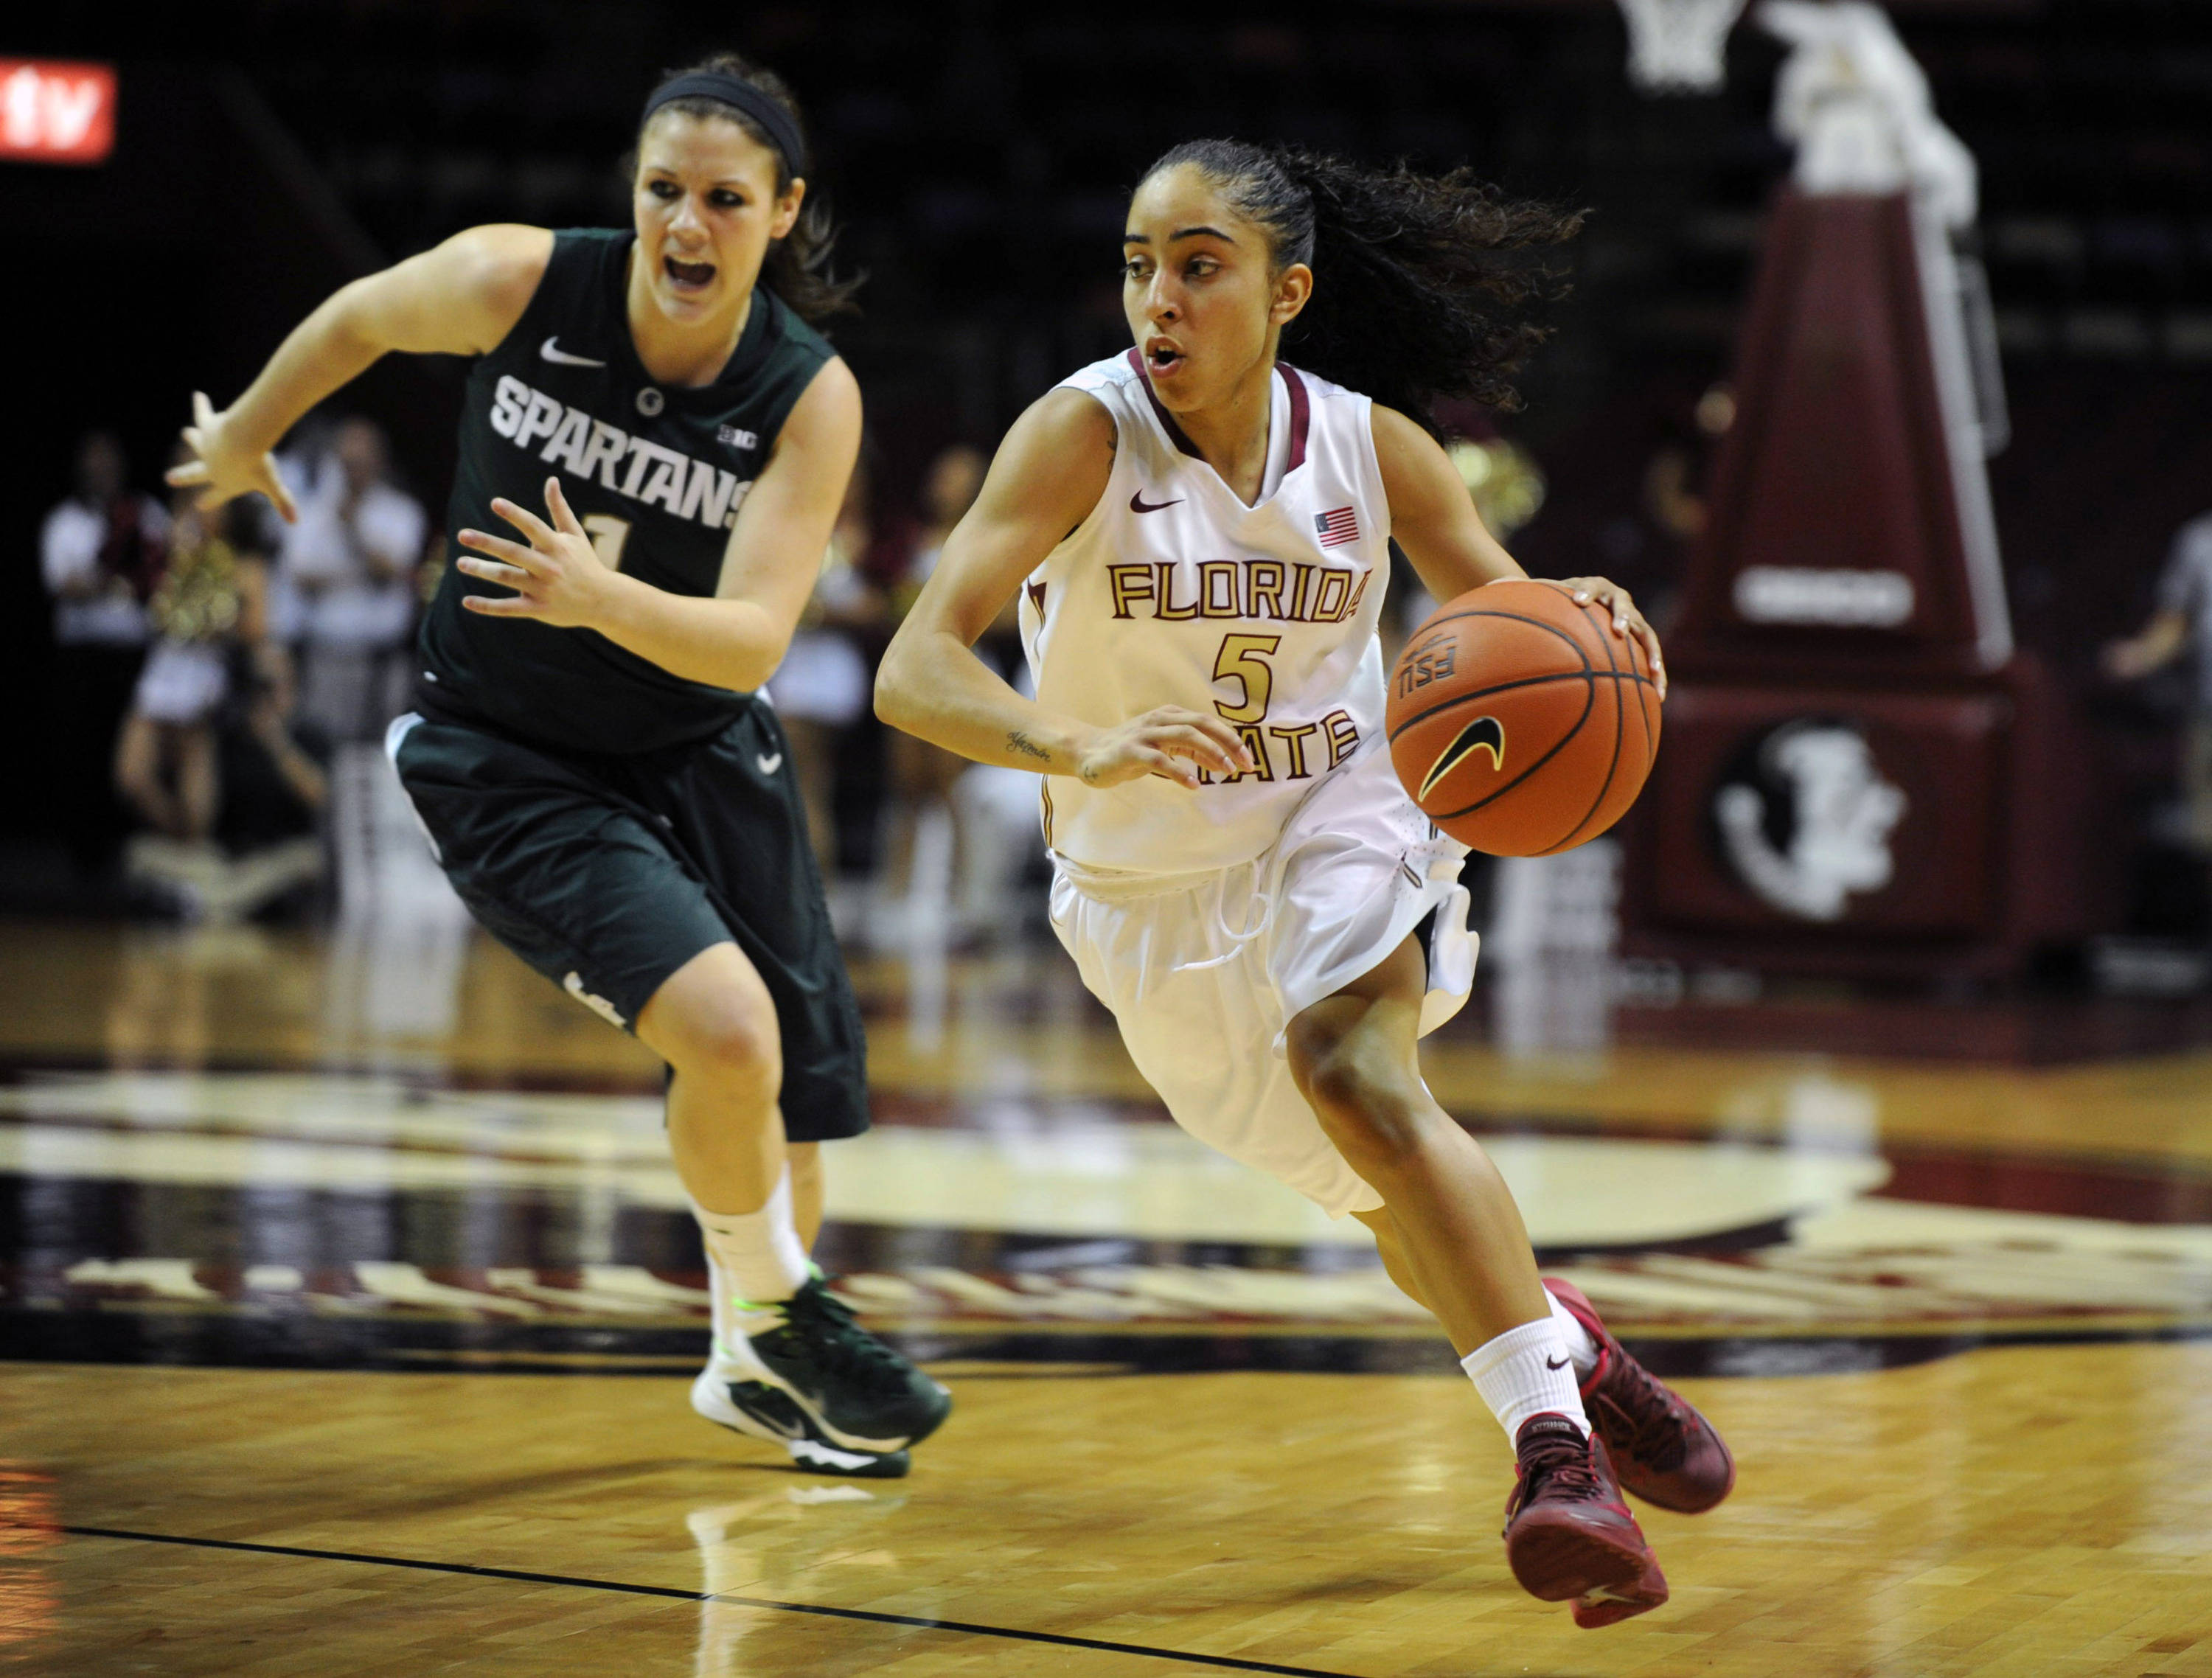 Dec 4, 2013; Tallahassee, FL, USA; Florida State Seminoles guard Cheetah Delgado (5) moves past Michigan State Spartans guard Tori Jankoska (1) during the game at the Donald L. Tucker Center. Mandatory Credit: Melina Vastola-USA TODAY Sports